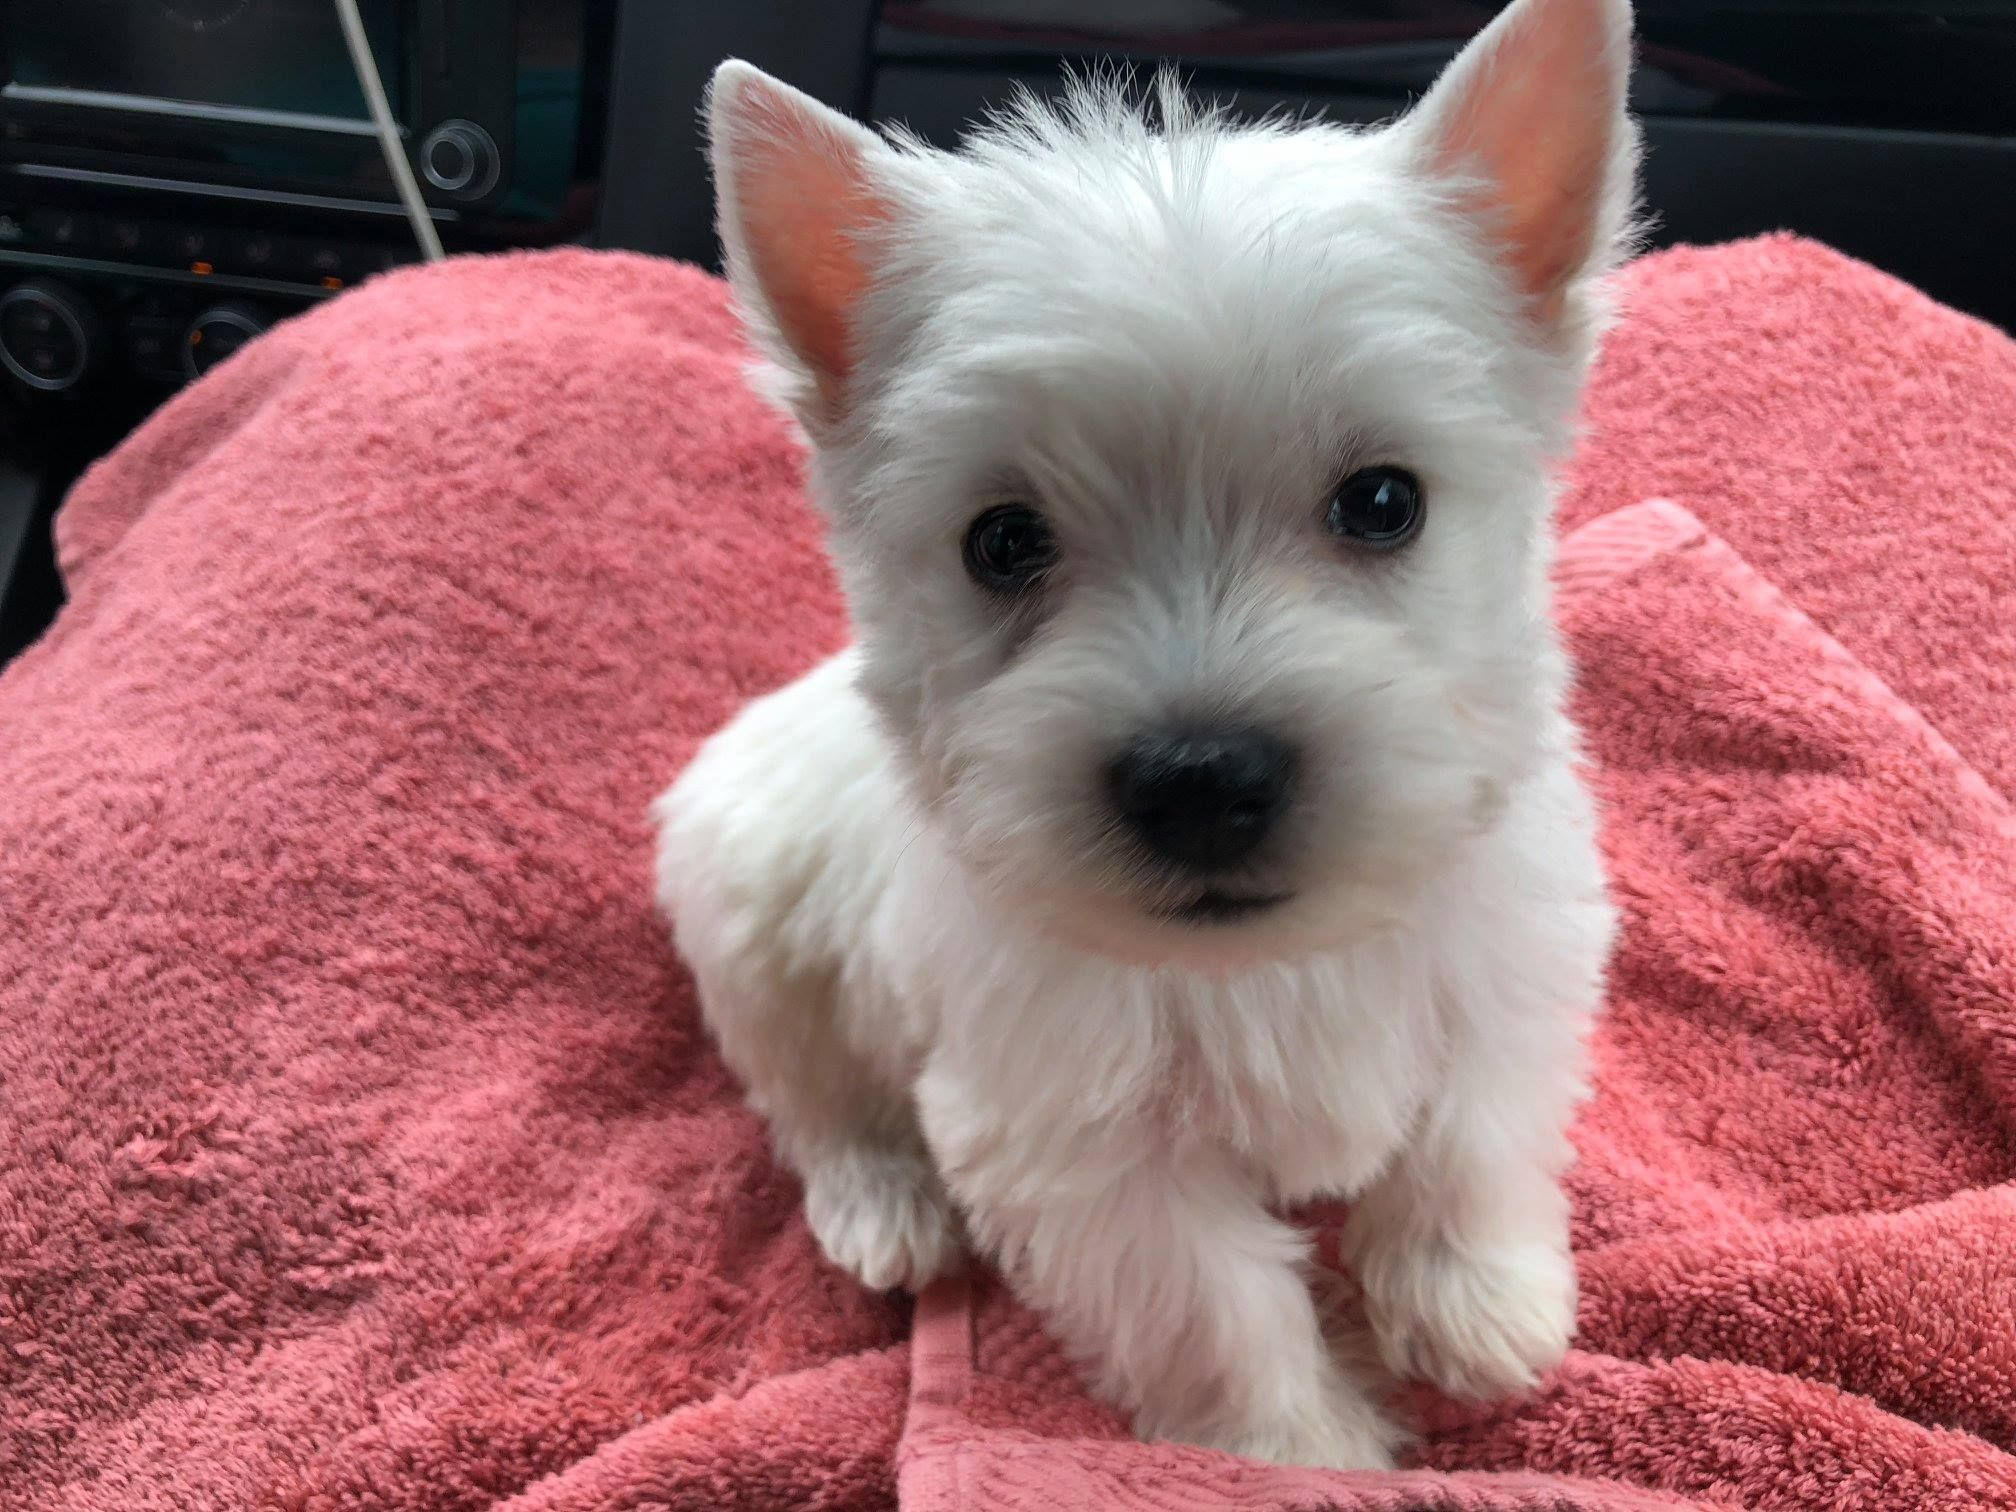 This Is Sparky 7 Weeks Old And His First Day Home Westie Dogs Westie Puppies West Highland Terrier